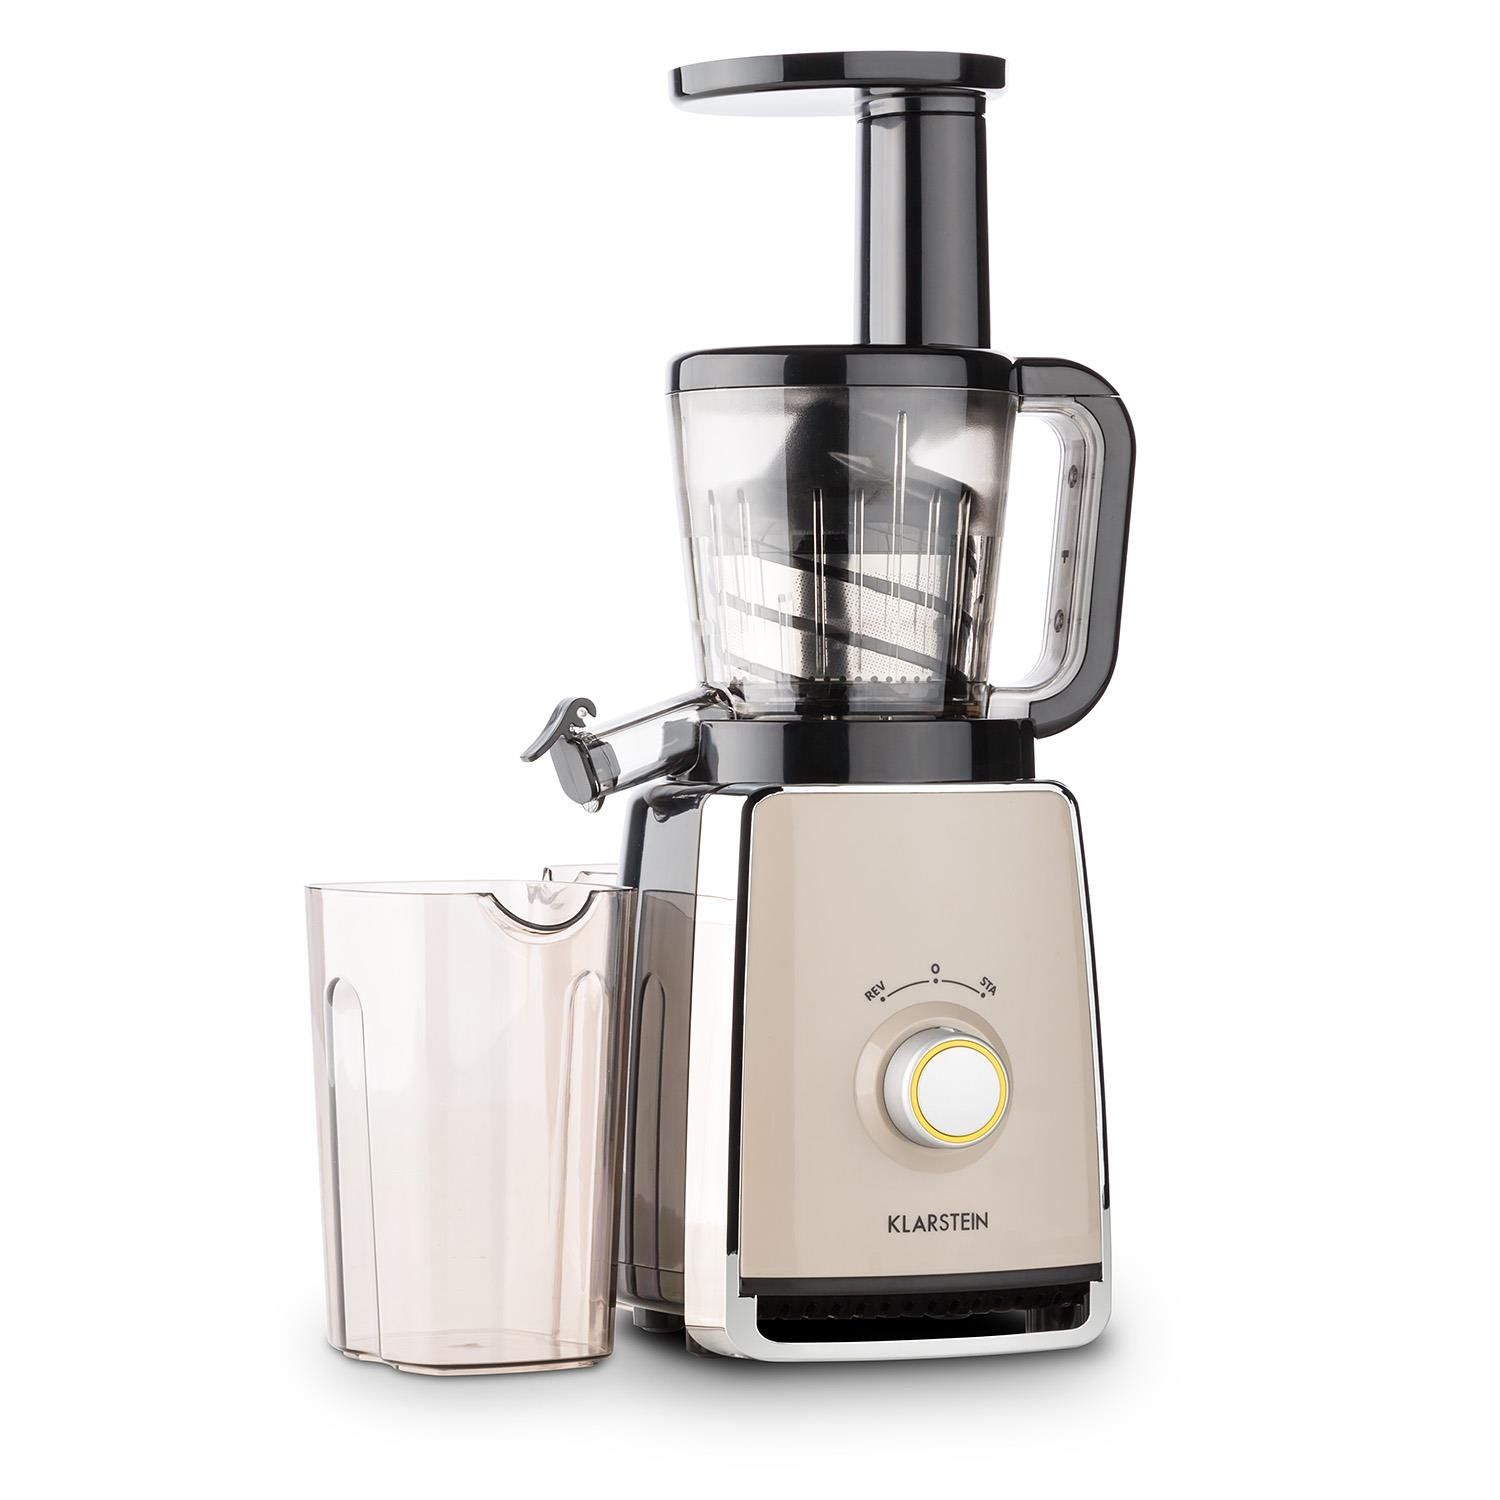 KLARSTEIN Sweetheart Slow Masticating Juicer Extractor • Fruit & Vegetable Cold Press Juicer Machine • 150 W • Slow Speed • Stainless Steel • Reverse Function • Chrome